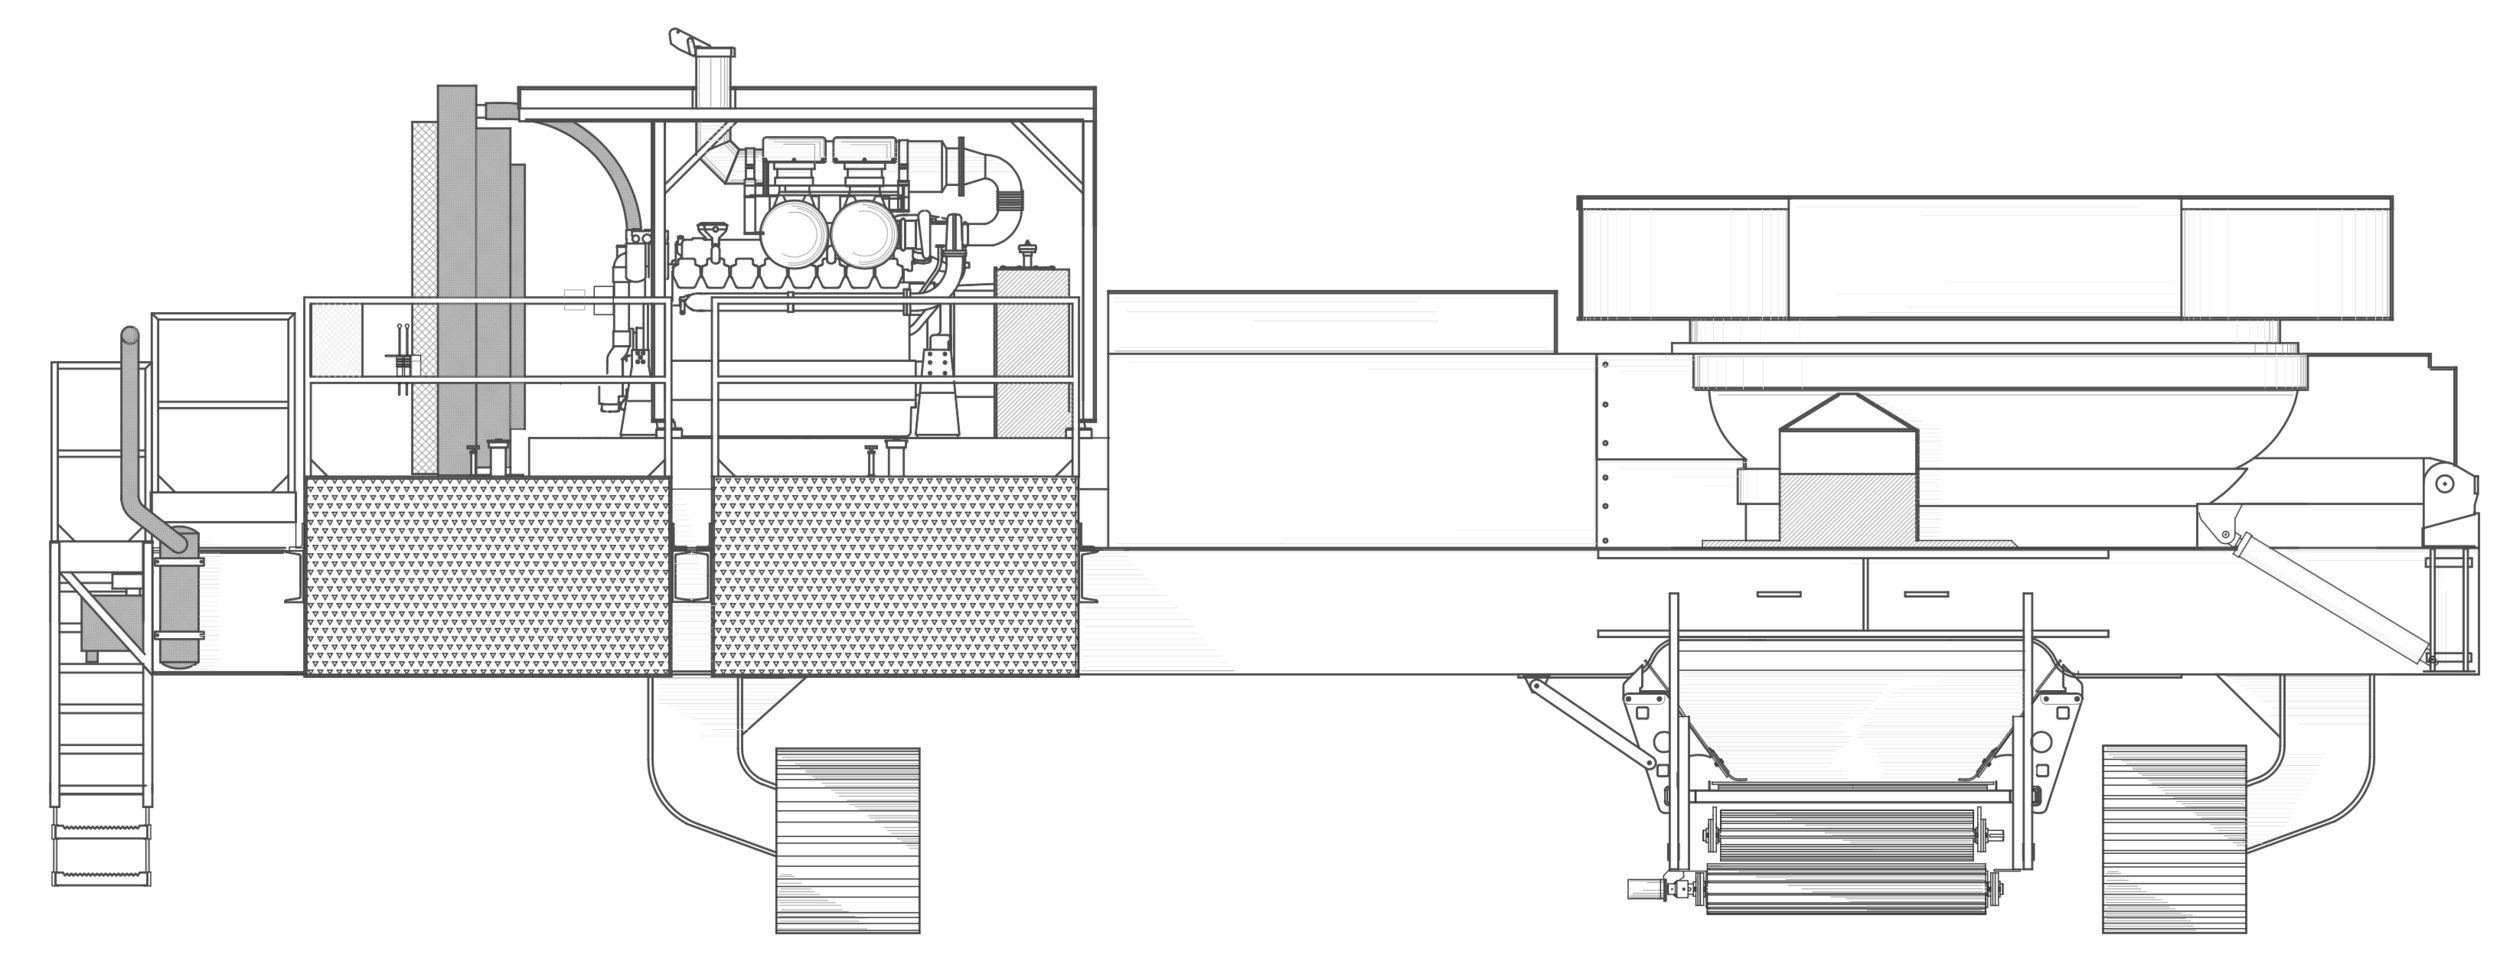 SWG1600      STANDARD FEATURES : Fluid coupling mill drive, reversing fan, radio remote control, tool box, engine cover, and super-screw belt lacing.  Weights vary depending on options. Widths based on 600 mm tracks or Transporter width.  Diamond Z reserves the right to improve our products and make changes without notice. Actual products and production rates may vary.